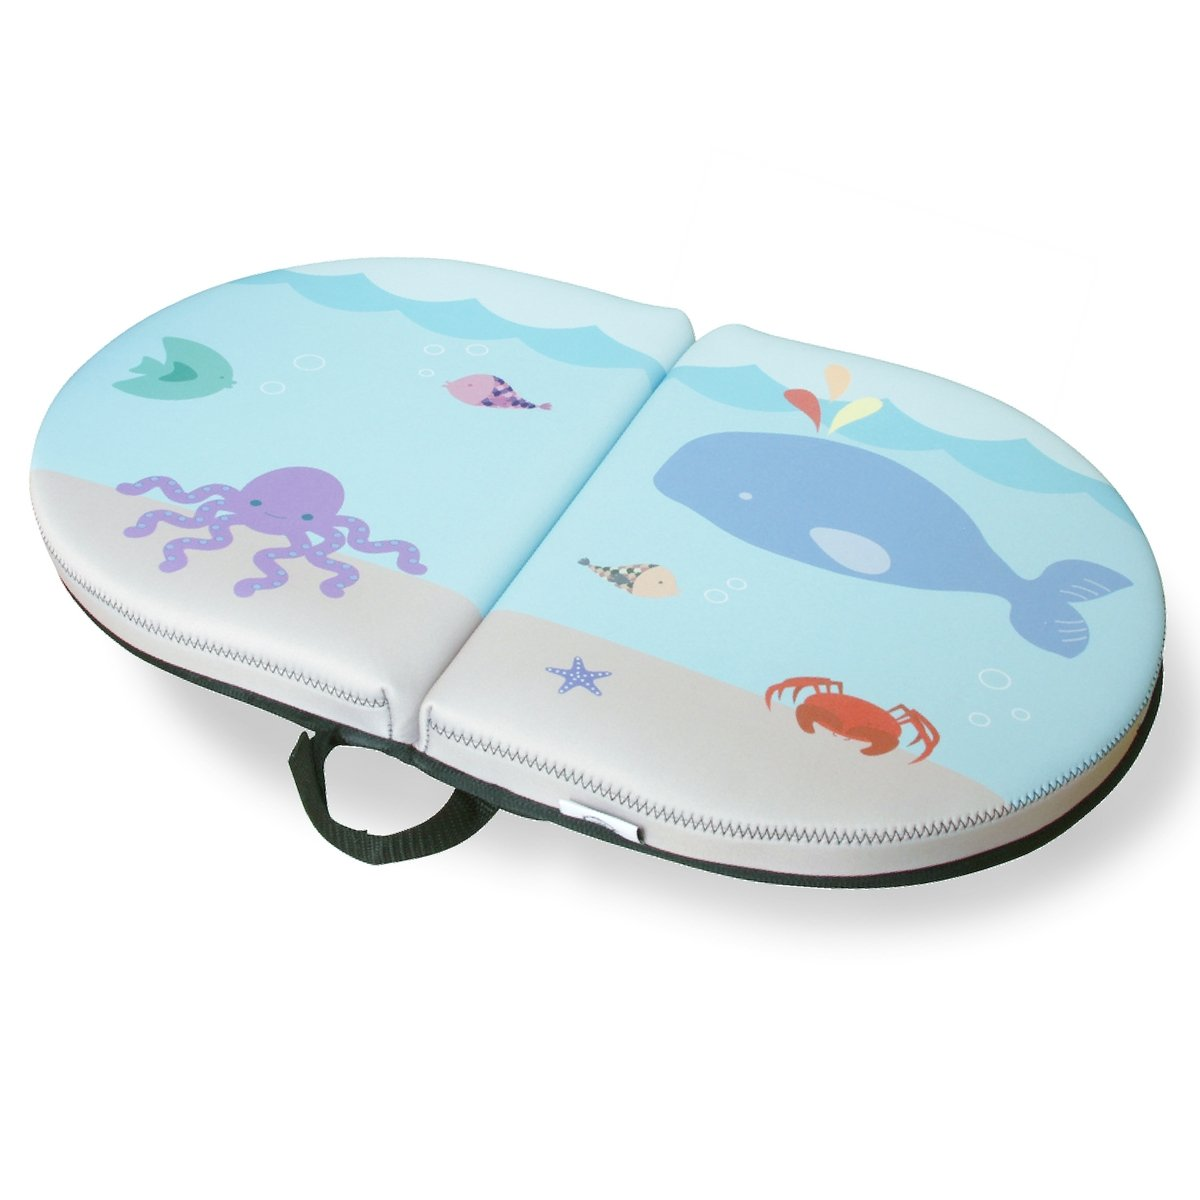 Uncommon Laundry Blue Whale Baby Bathtub Kneeler - PAD to Cushion & Support Knees for Longer Tub Time 22' Extra-Wide 1.5' Thick & Cushy Foam Non-Slip Safety Backing Easy to Clean Removable Cover